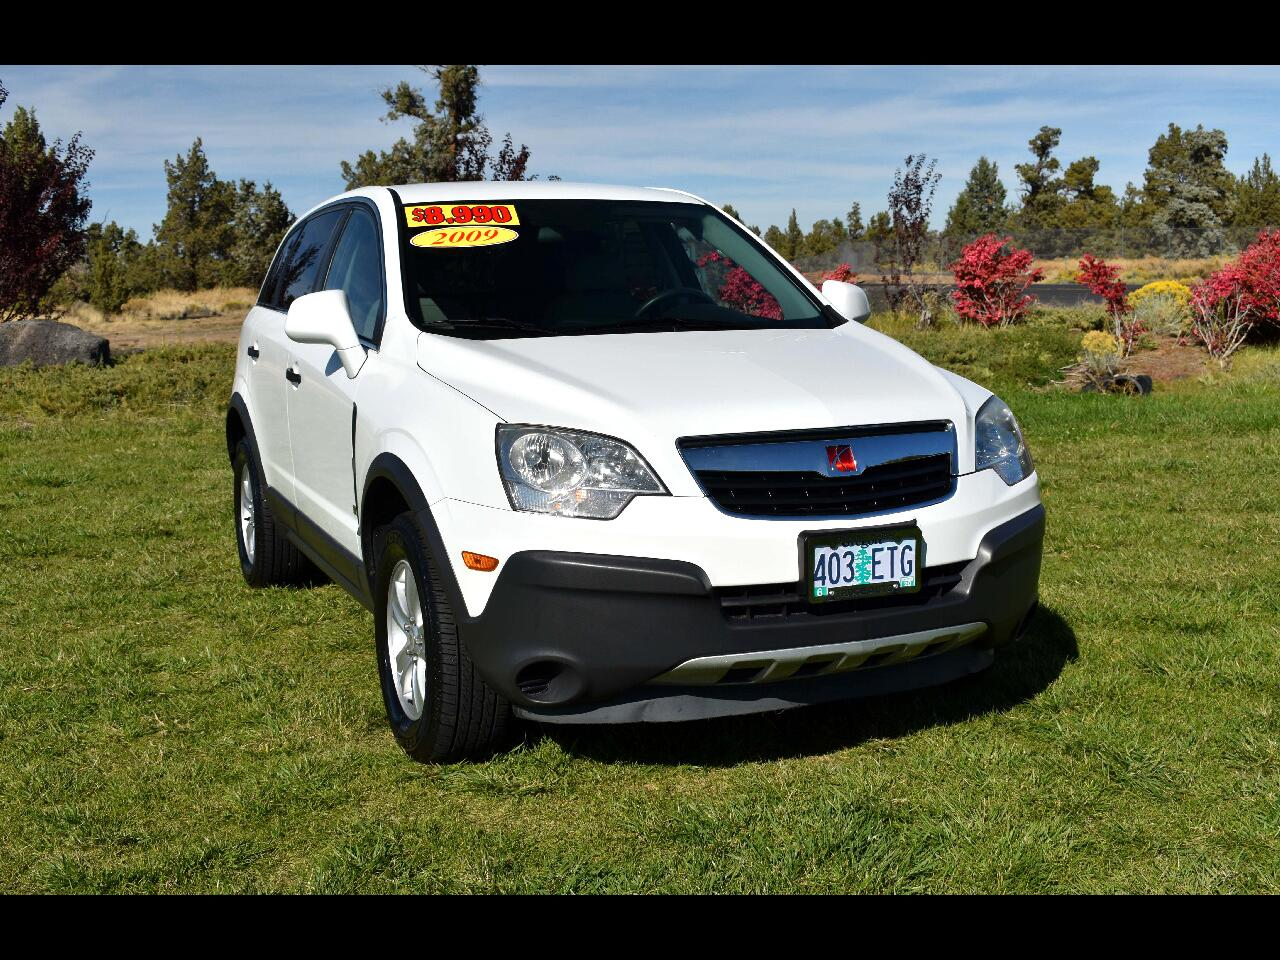 2009 Saturn VUE AWD 4dr V6 XE**LOW MILES**